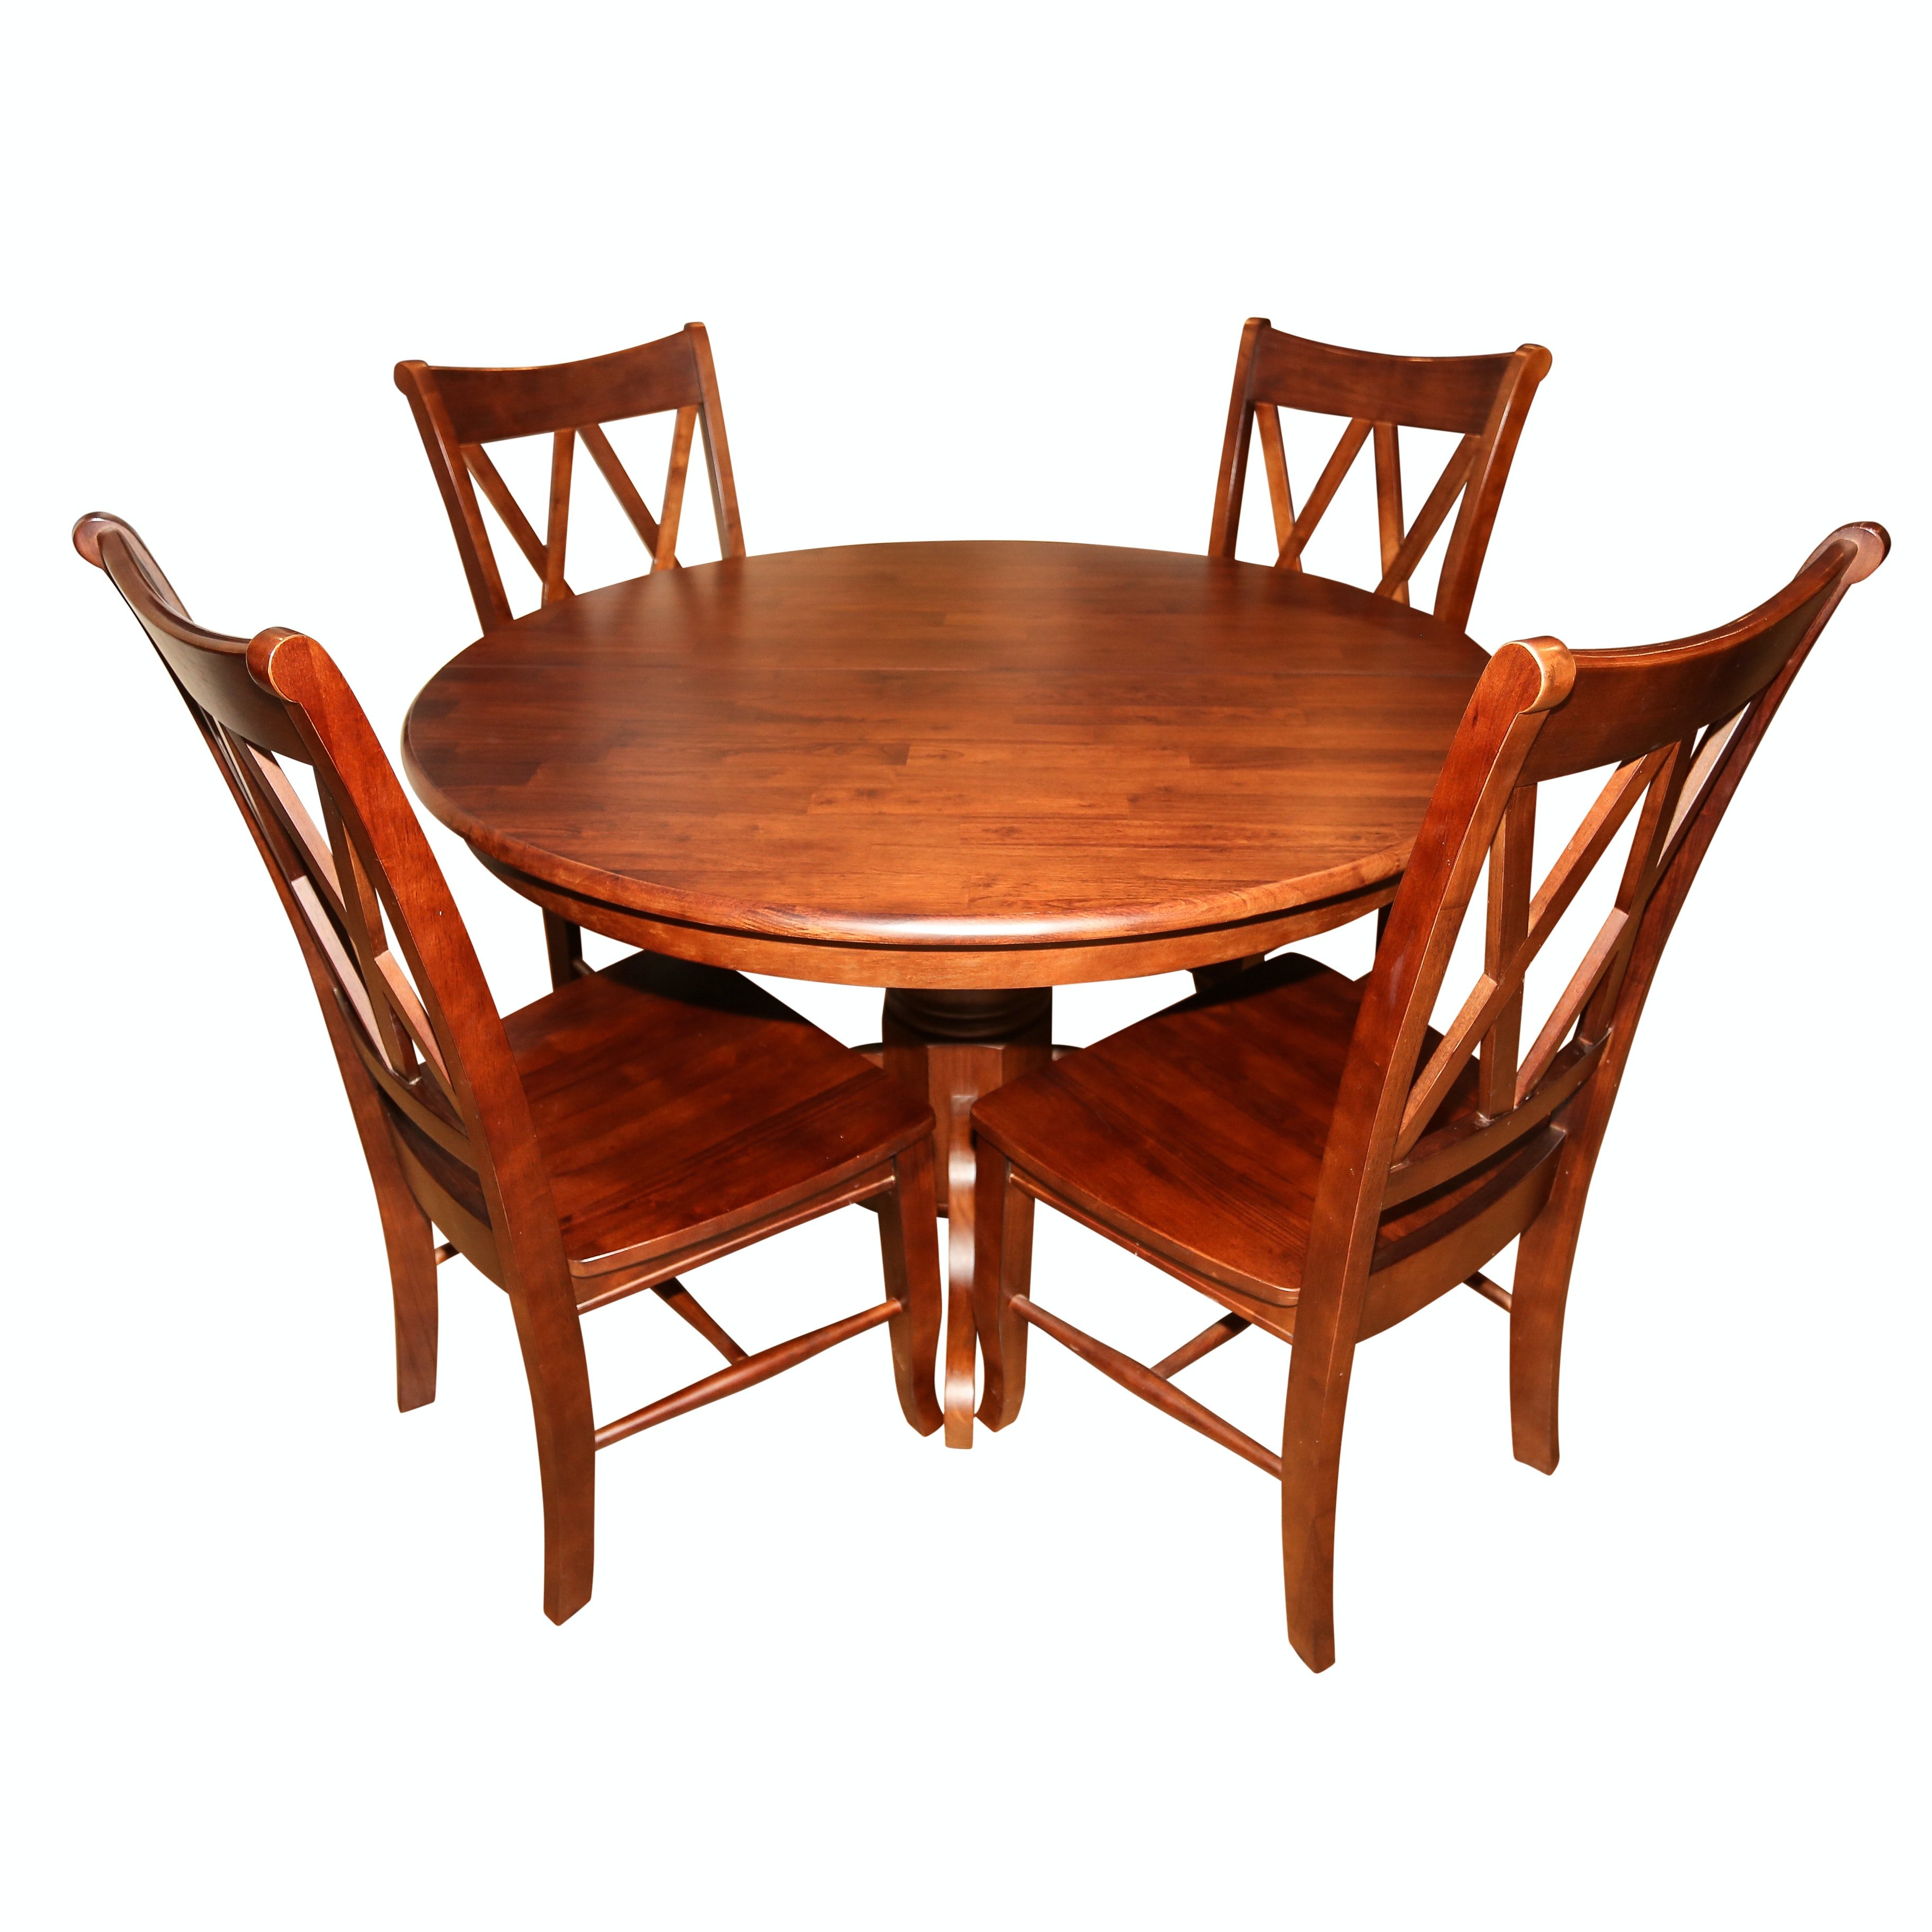 Stained Wooden Pedestal Table with Open Lattice Back Chairs, 21st Century